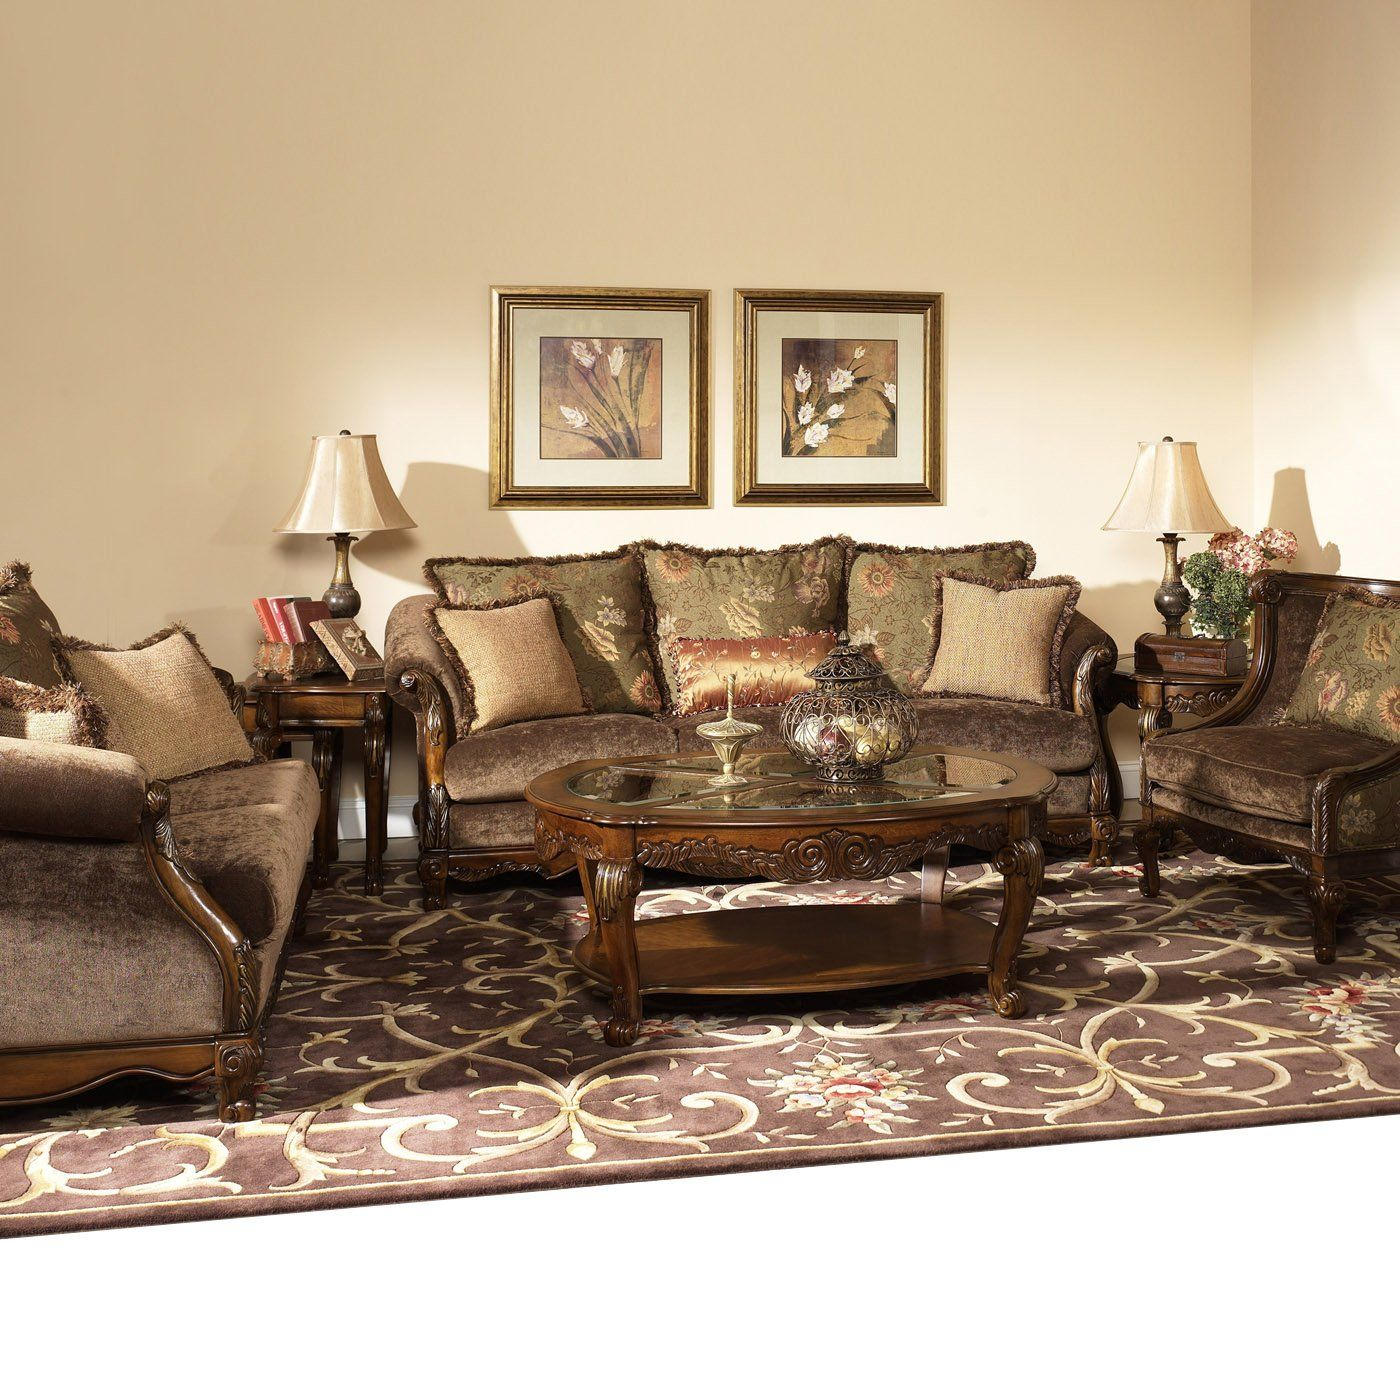 Livingroom sets   Fairmont Designs Furniture Repertoire Sofa Living Room Set. Livingroom sets   Fairmont Designs Furniture Repertoire Sofa